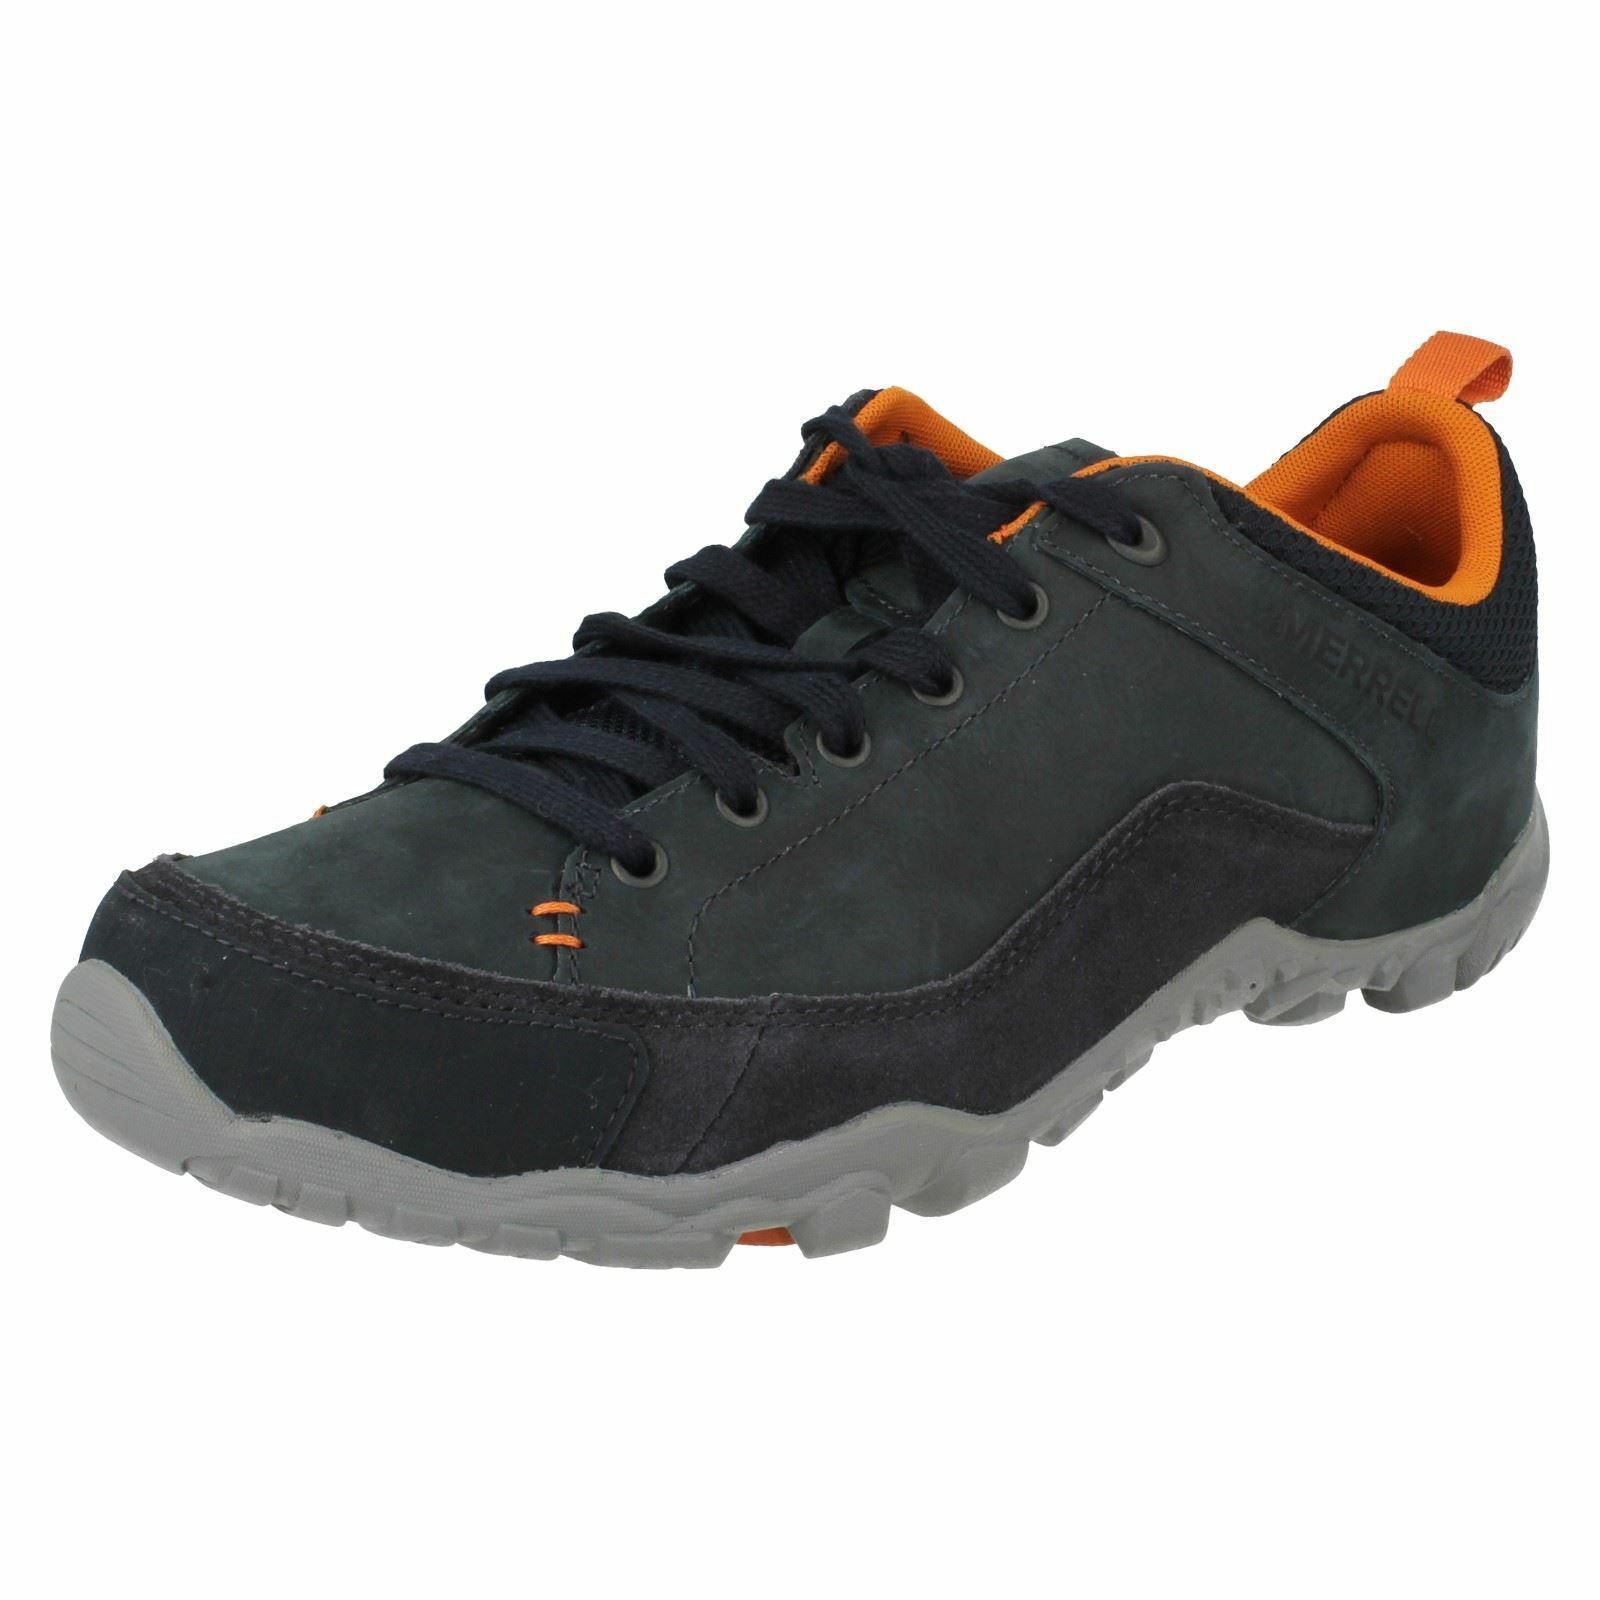 Mens Merrell Walking shoes Telluride - Lace